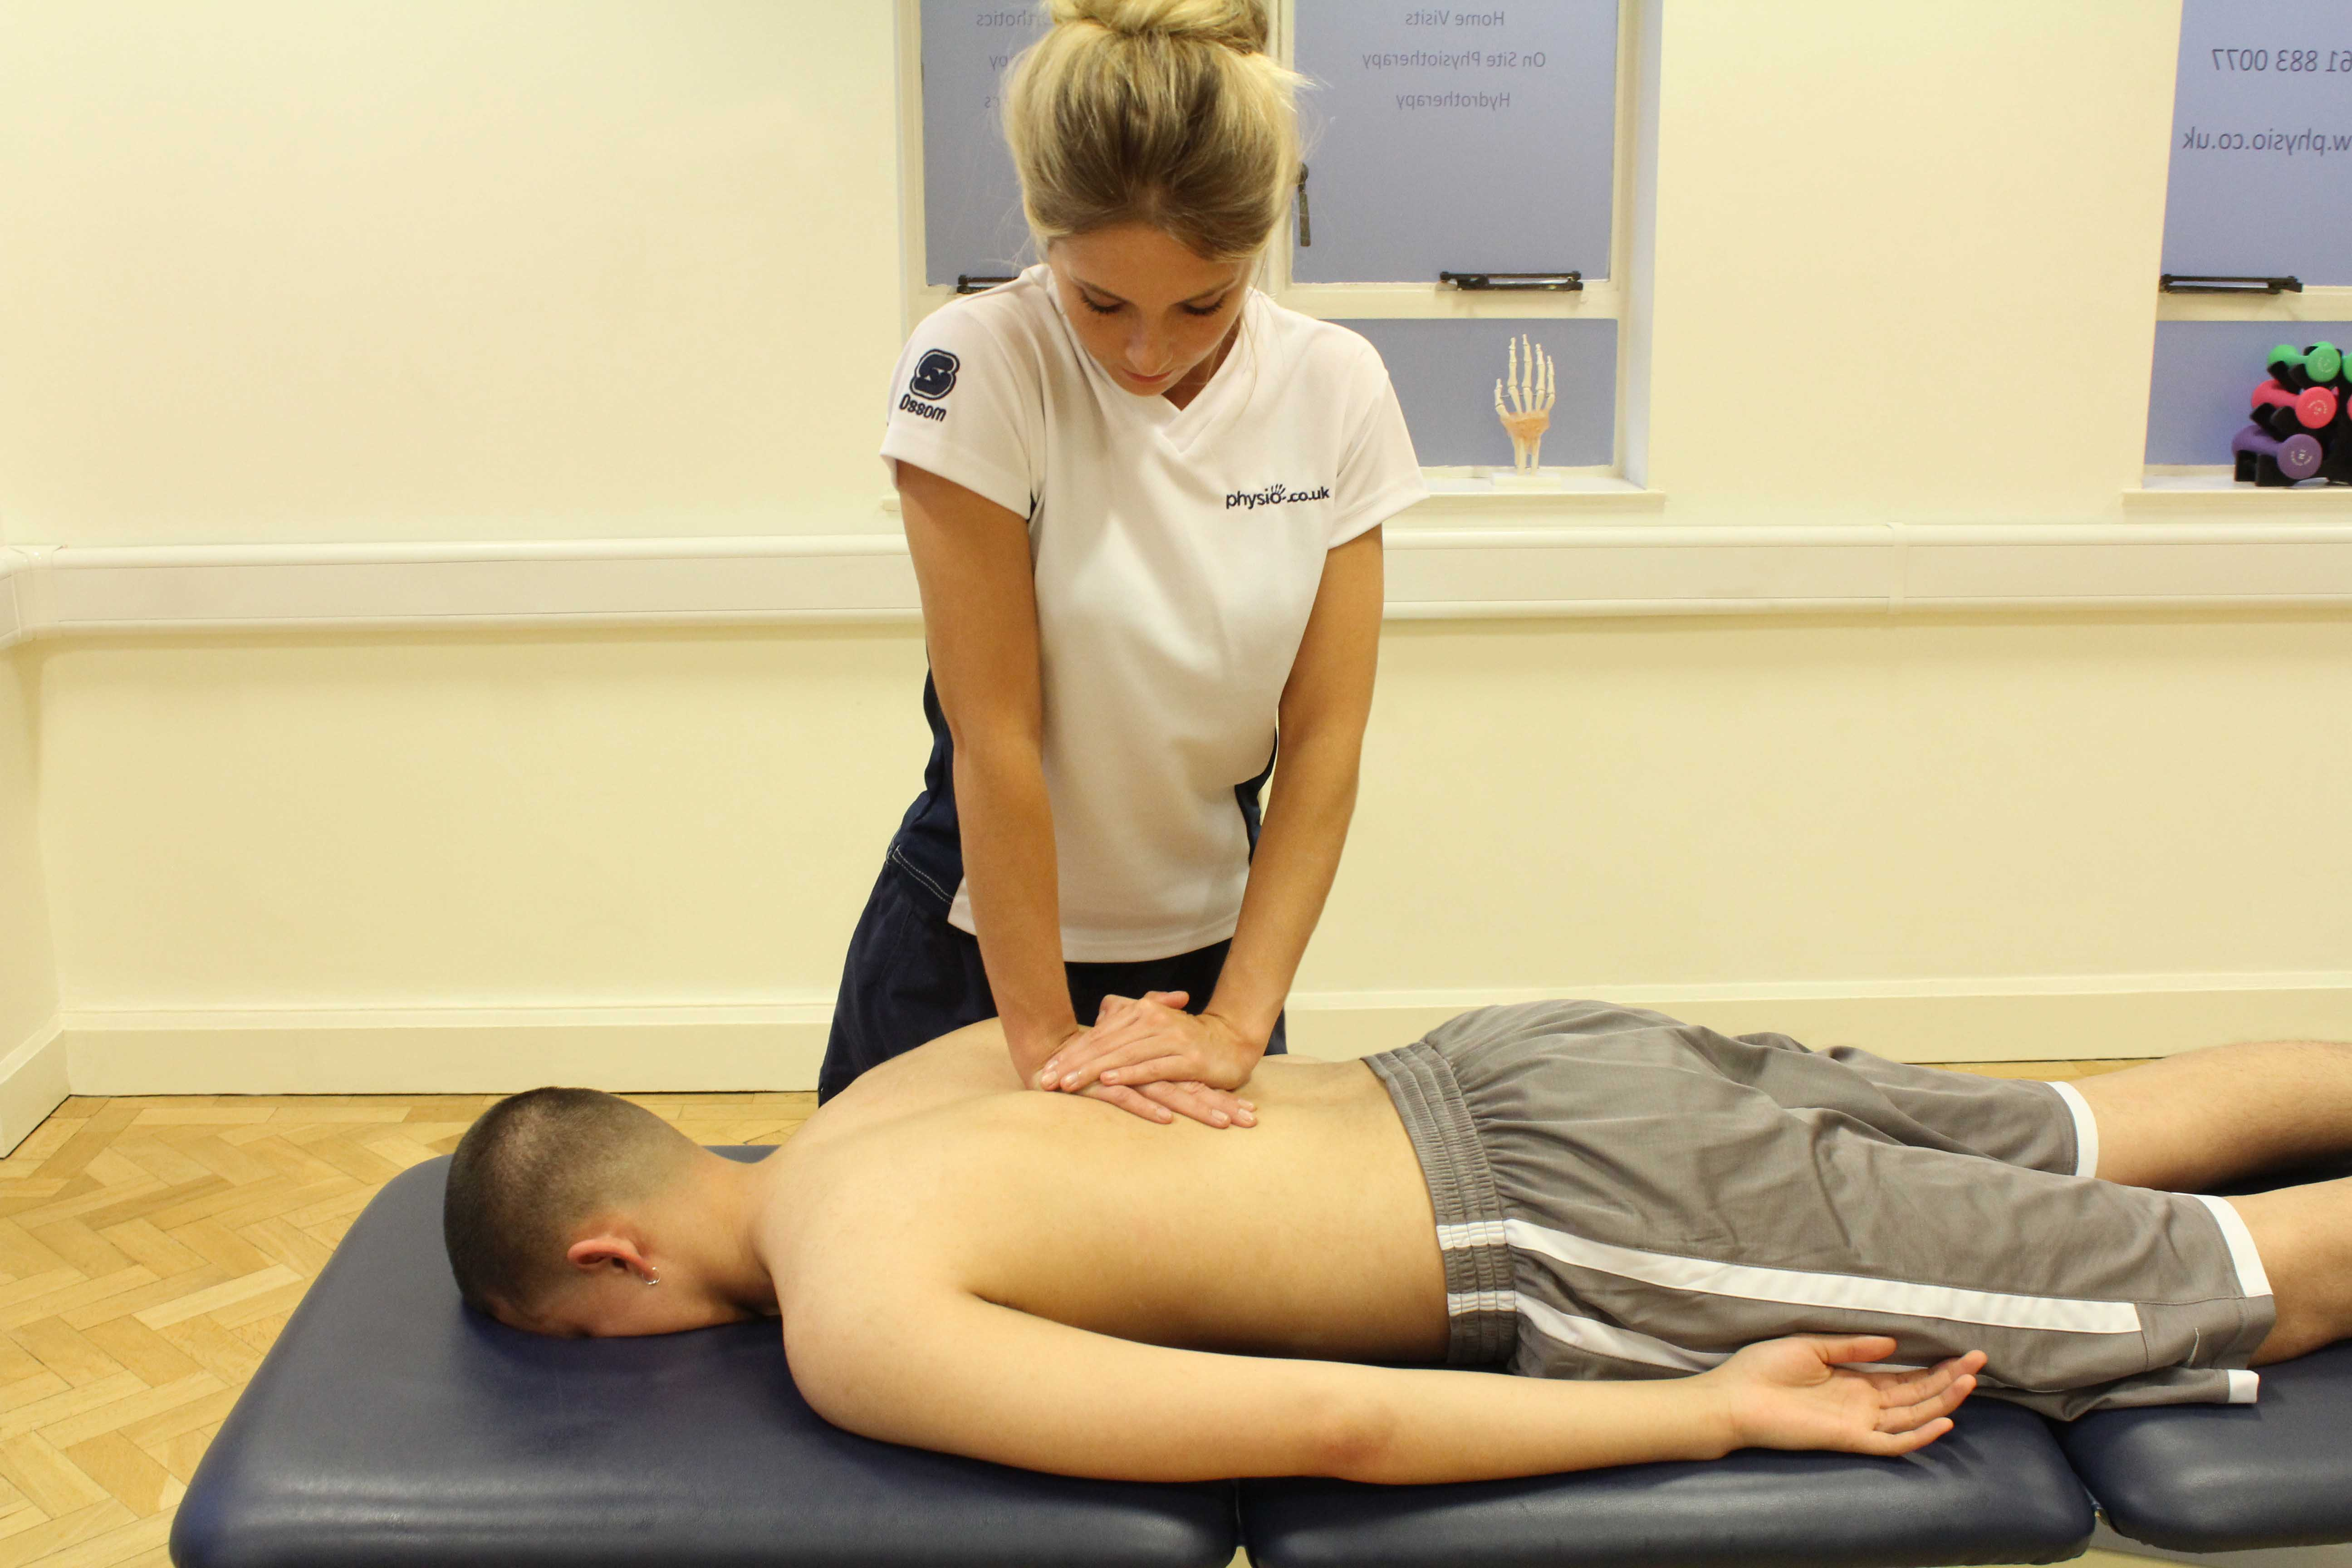 compression massage technique applied to thoracic spine